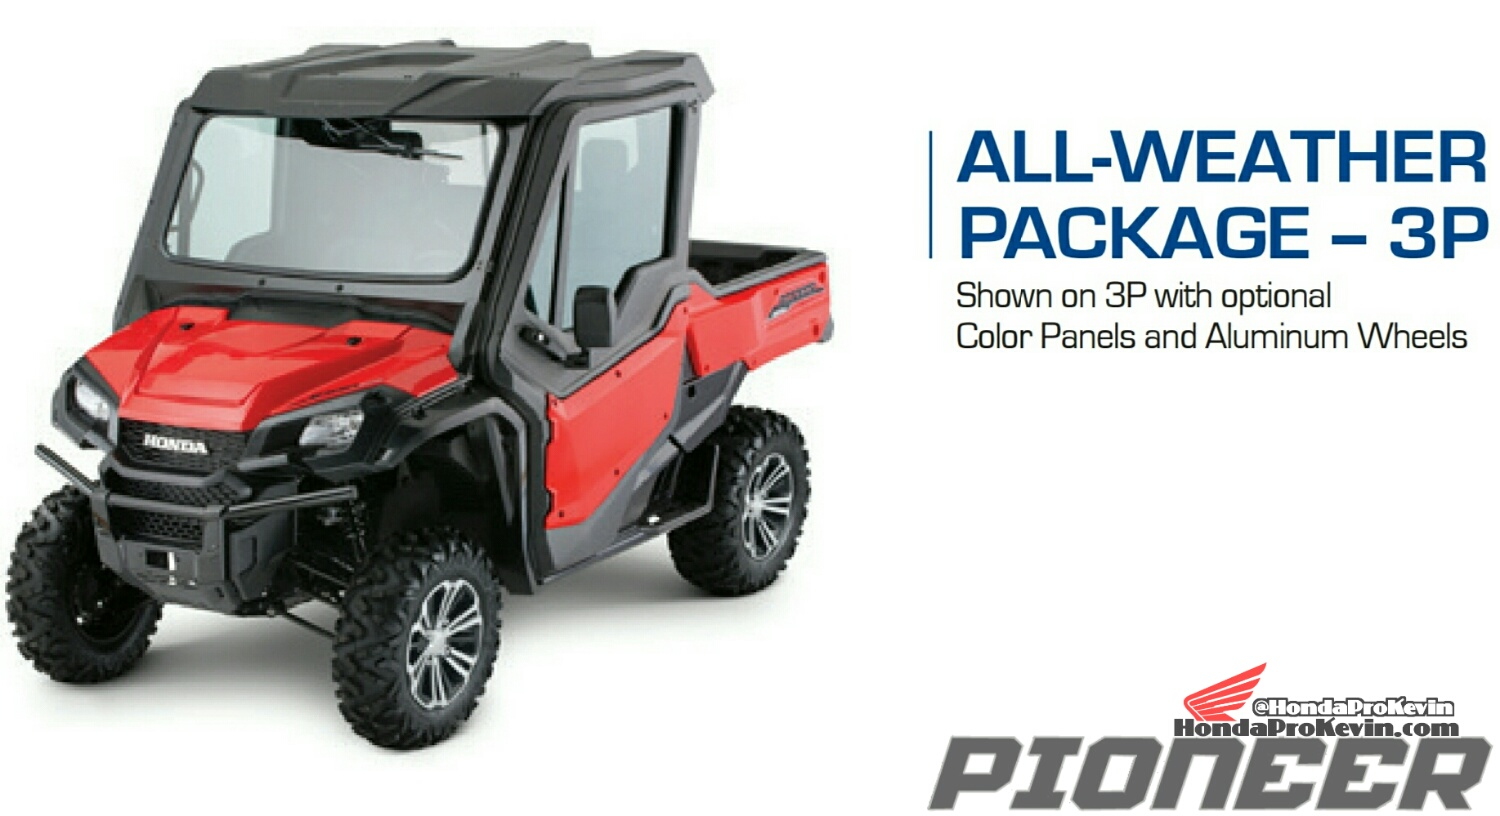 2018 Honda Pioneer 1000 5 Deluxe Review Specs Seater Utv Toyota Shows The Iroad A Fullyenclosed Tilting Electric Three All Weather Package Accessories Parts Sxs